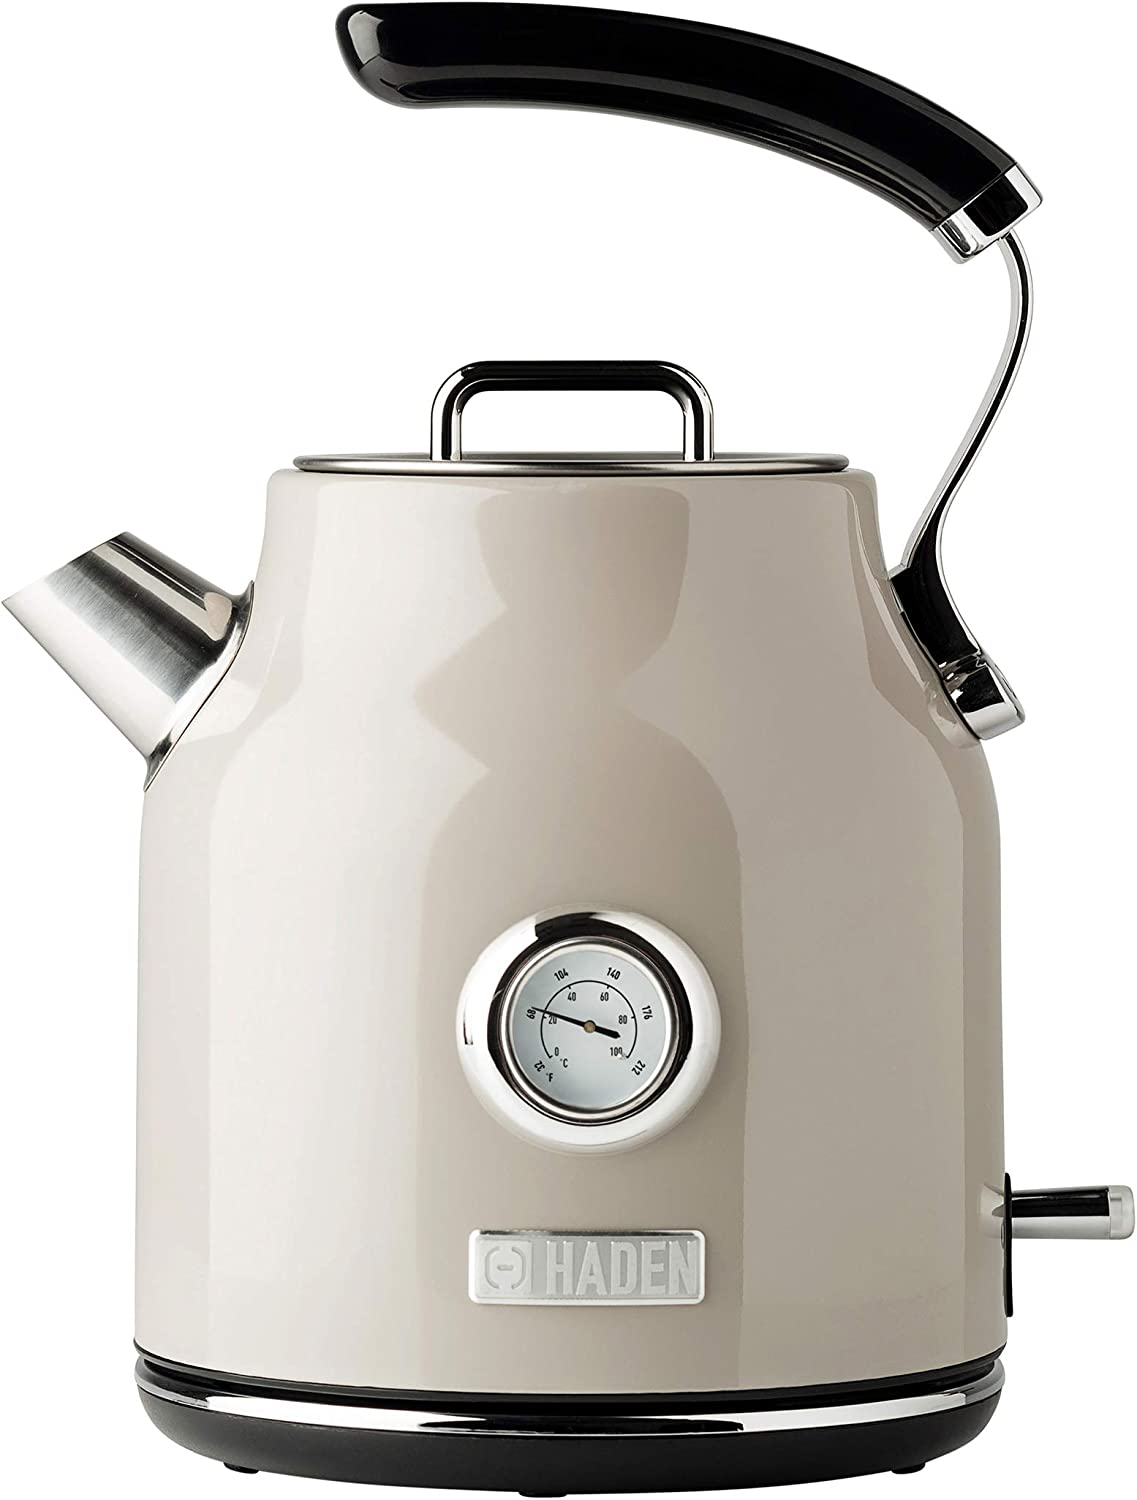 Haden DORSET 1.7 Complete Free Shipping Litre Stainless specialty shop Retro Electric Steel wit Kettle